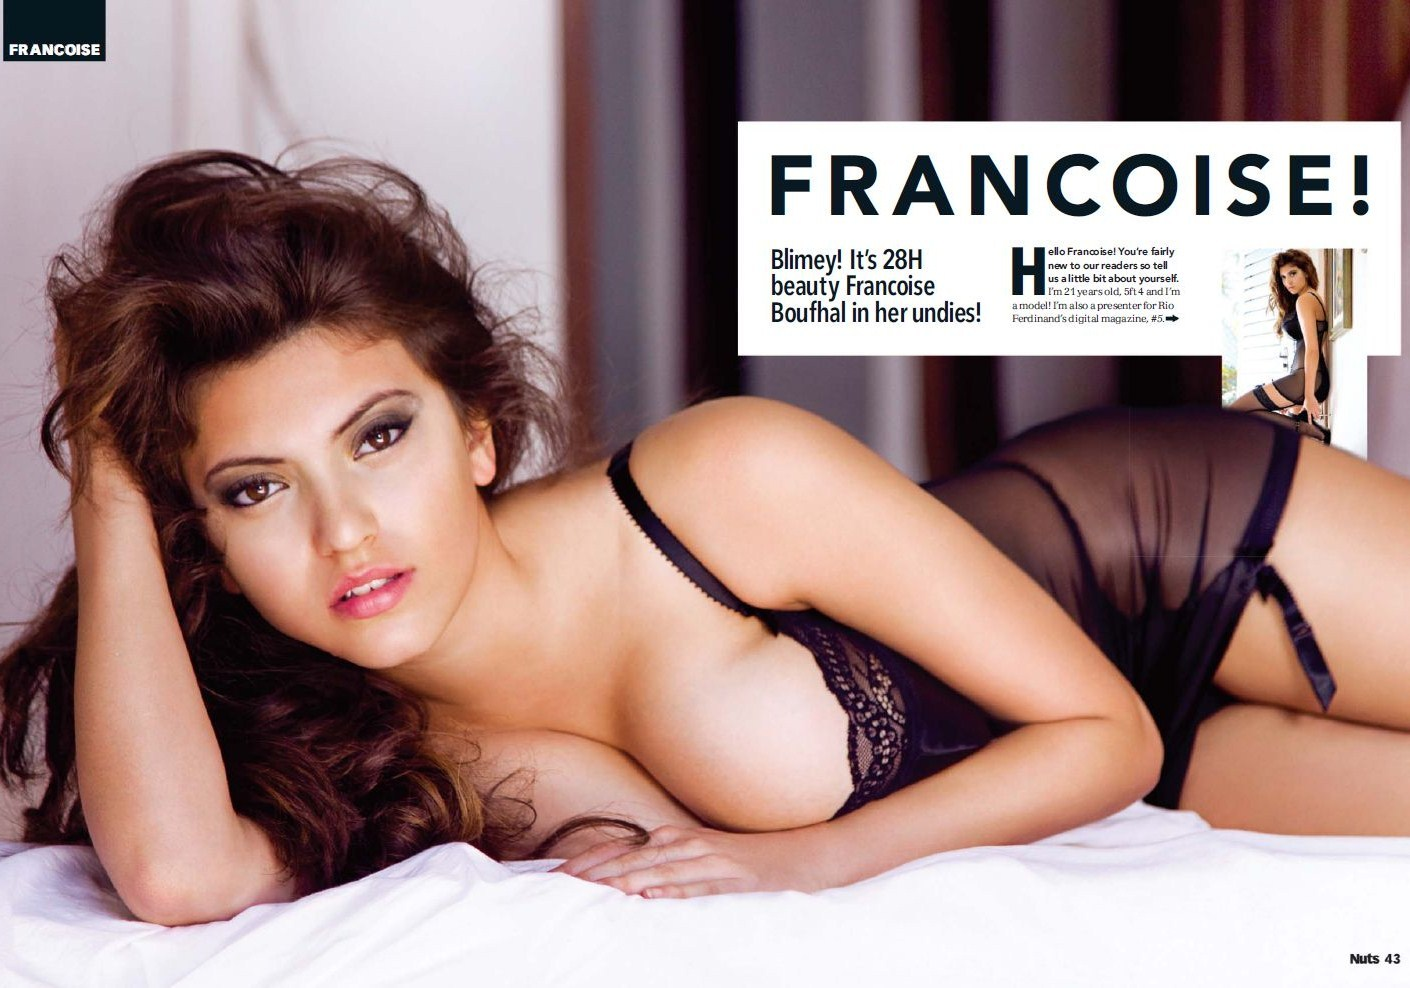 Francoise Boufhal nude, topless pictures, playboy photos